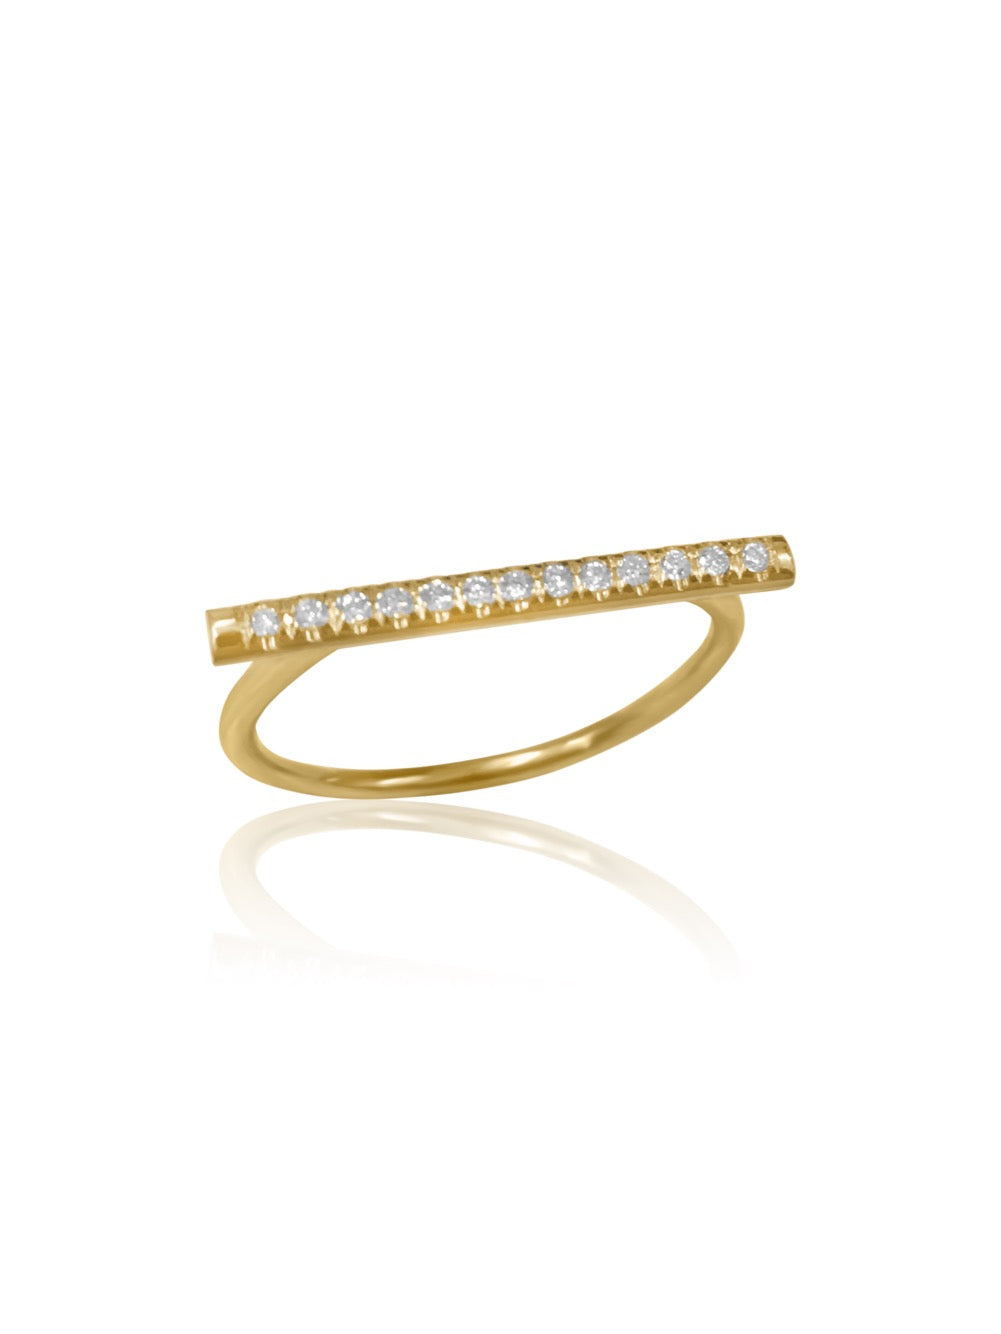 14K Micro pave Diamond Bar Ring